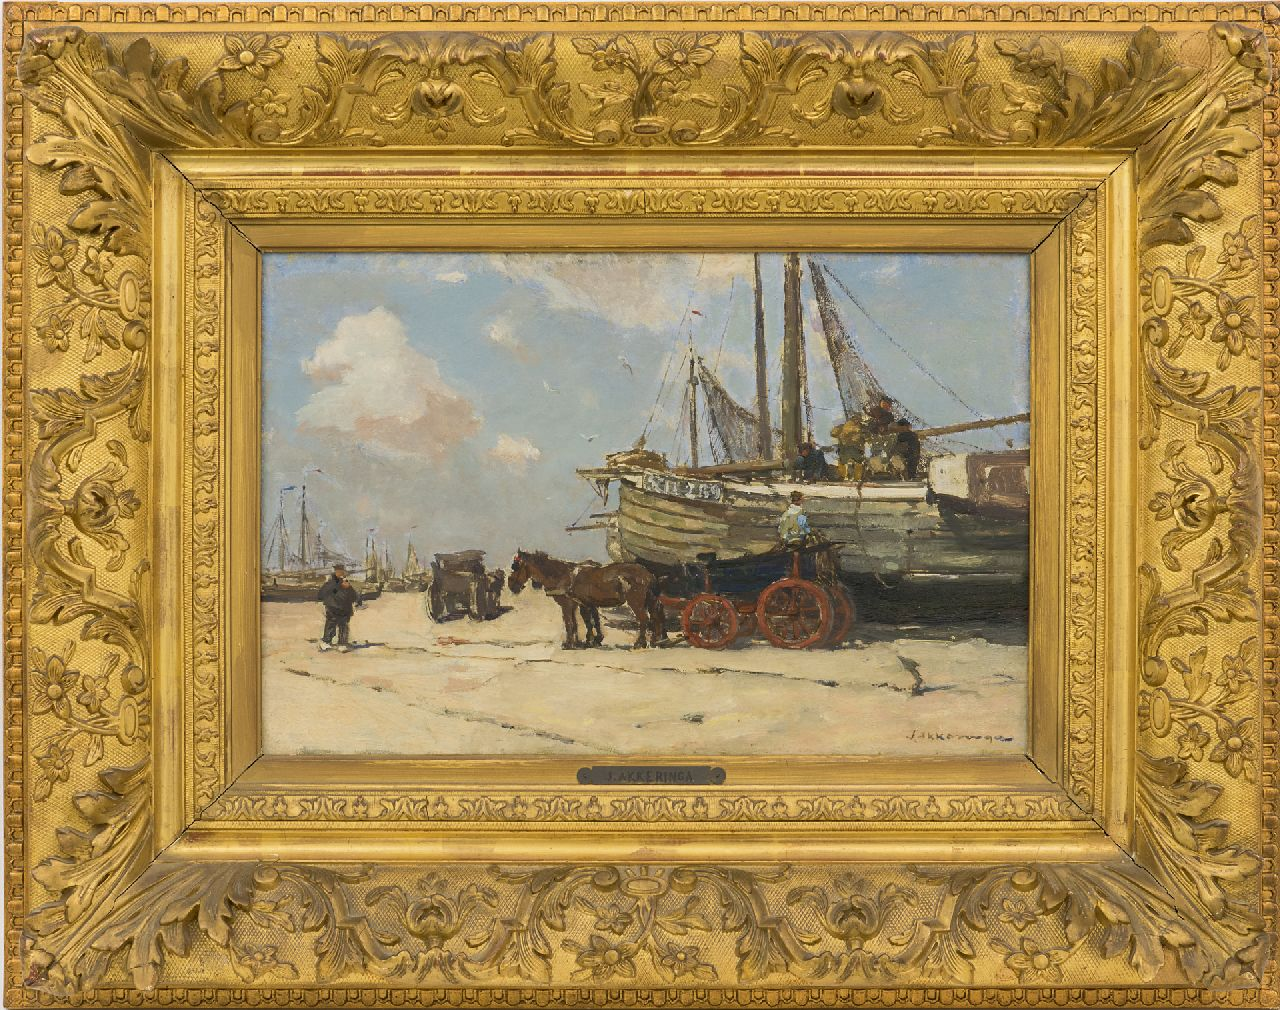 Akkeringa J.E.H.  | 'Johannes Evert' Hendrik Akkeringa | Paintings offered for sale | Unloading the fishing boats on Scheveningen beach, oil on panel 26.6 x 40.1 cm, signed l.r. and painted ca. 1901